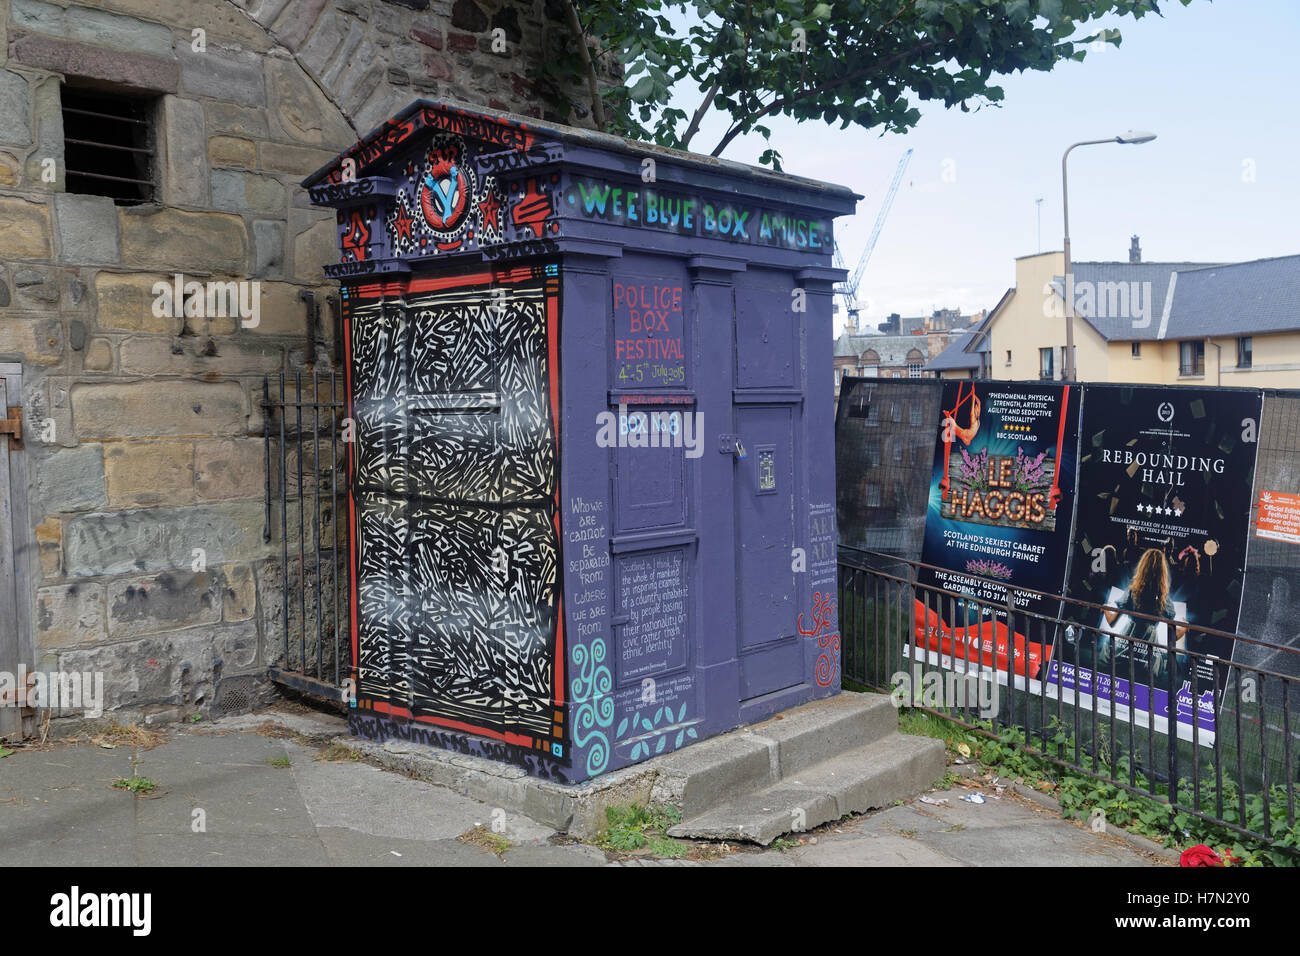 Edinburgh police box dr who adapted for other uses - Stock Image